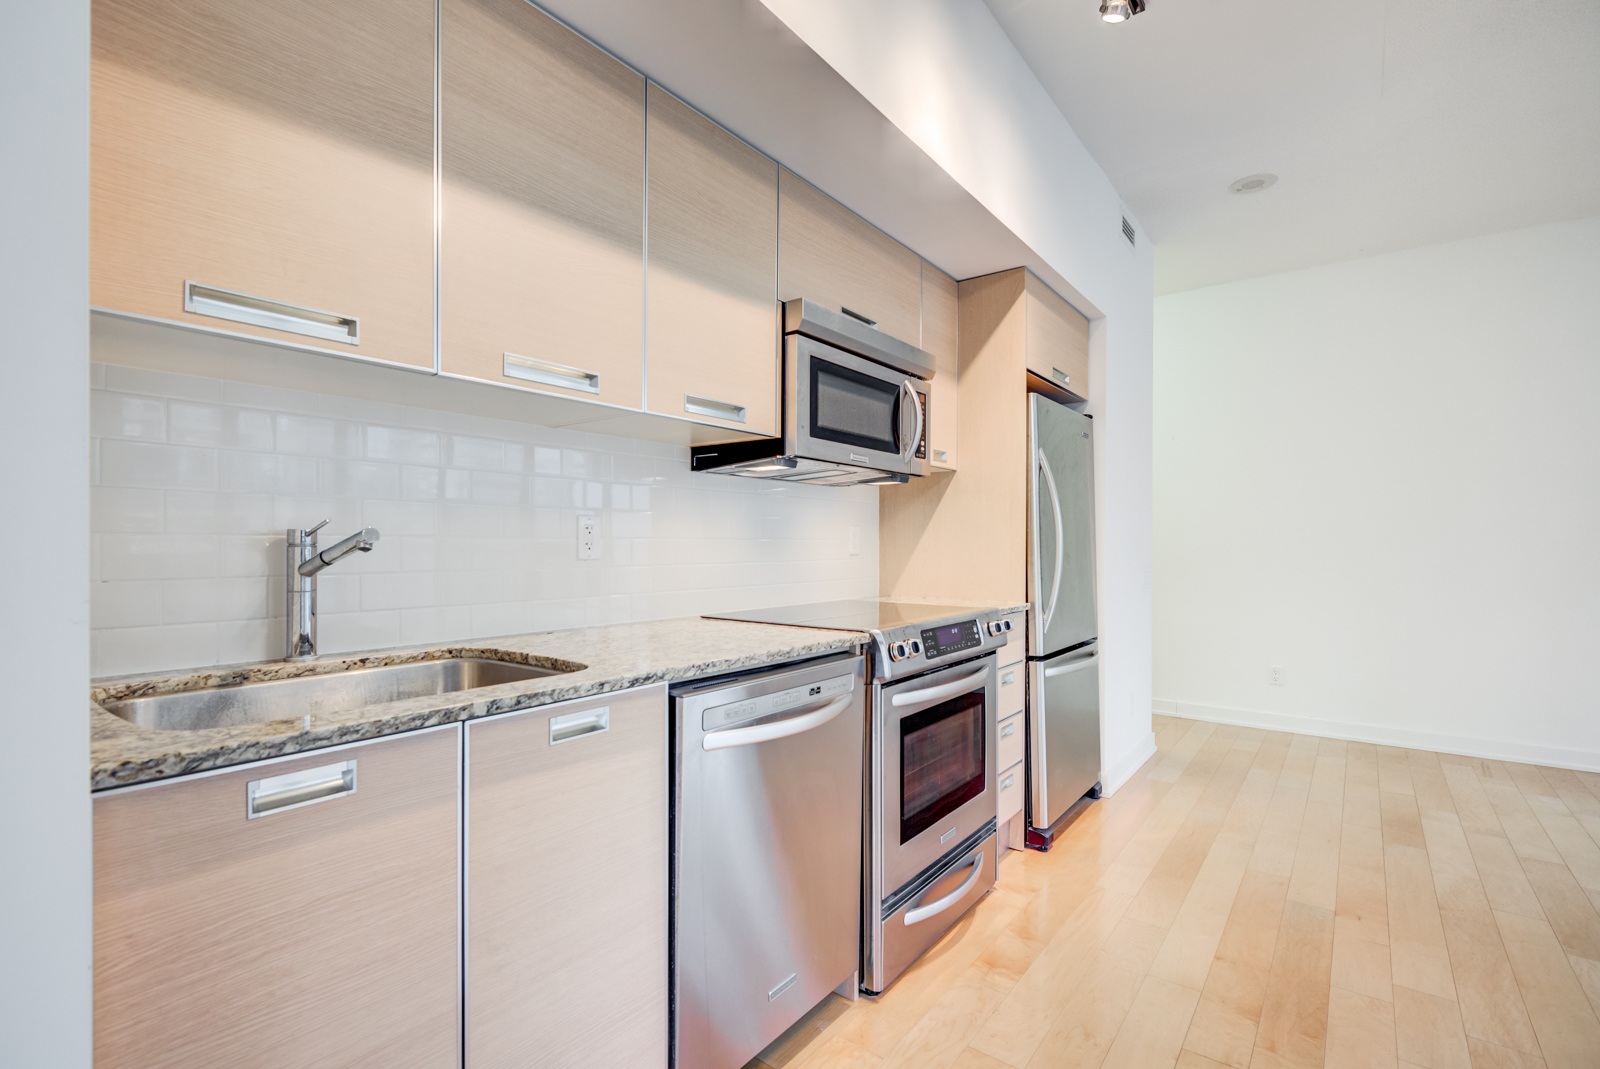 Another kitchen photo; close-up of cabinets and appliances.